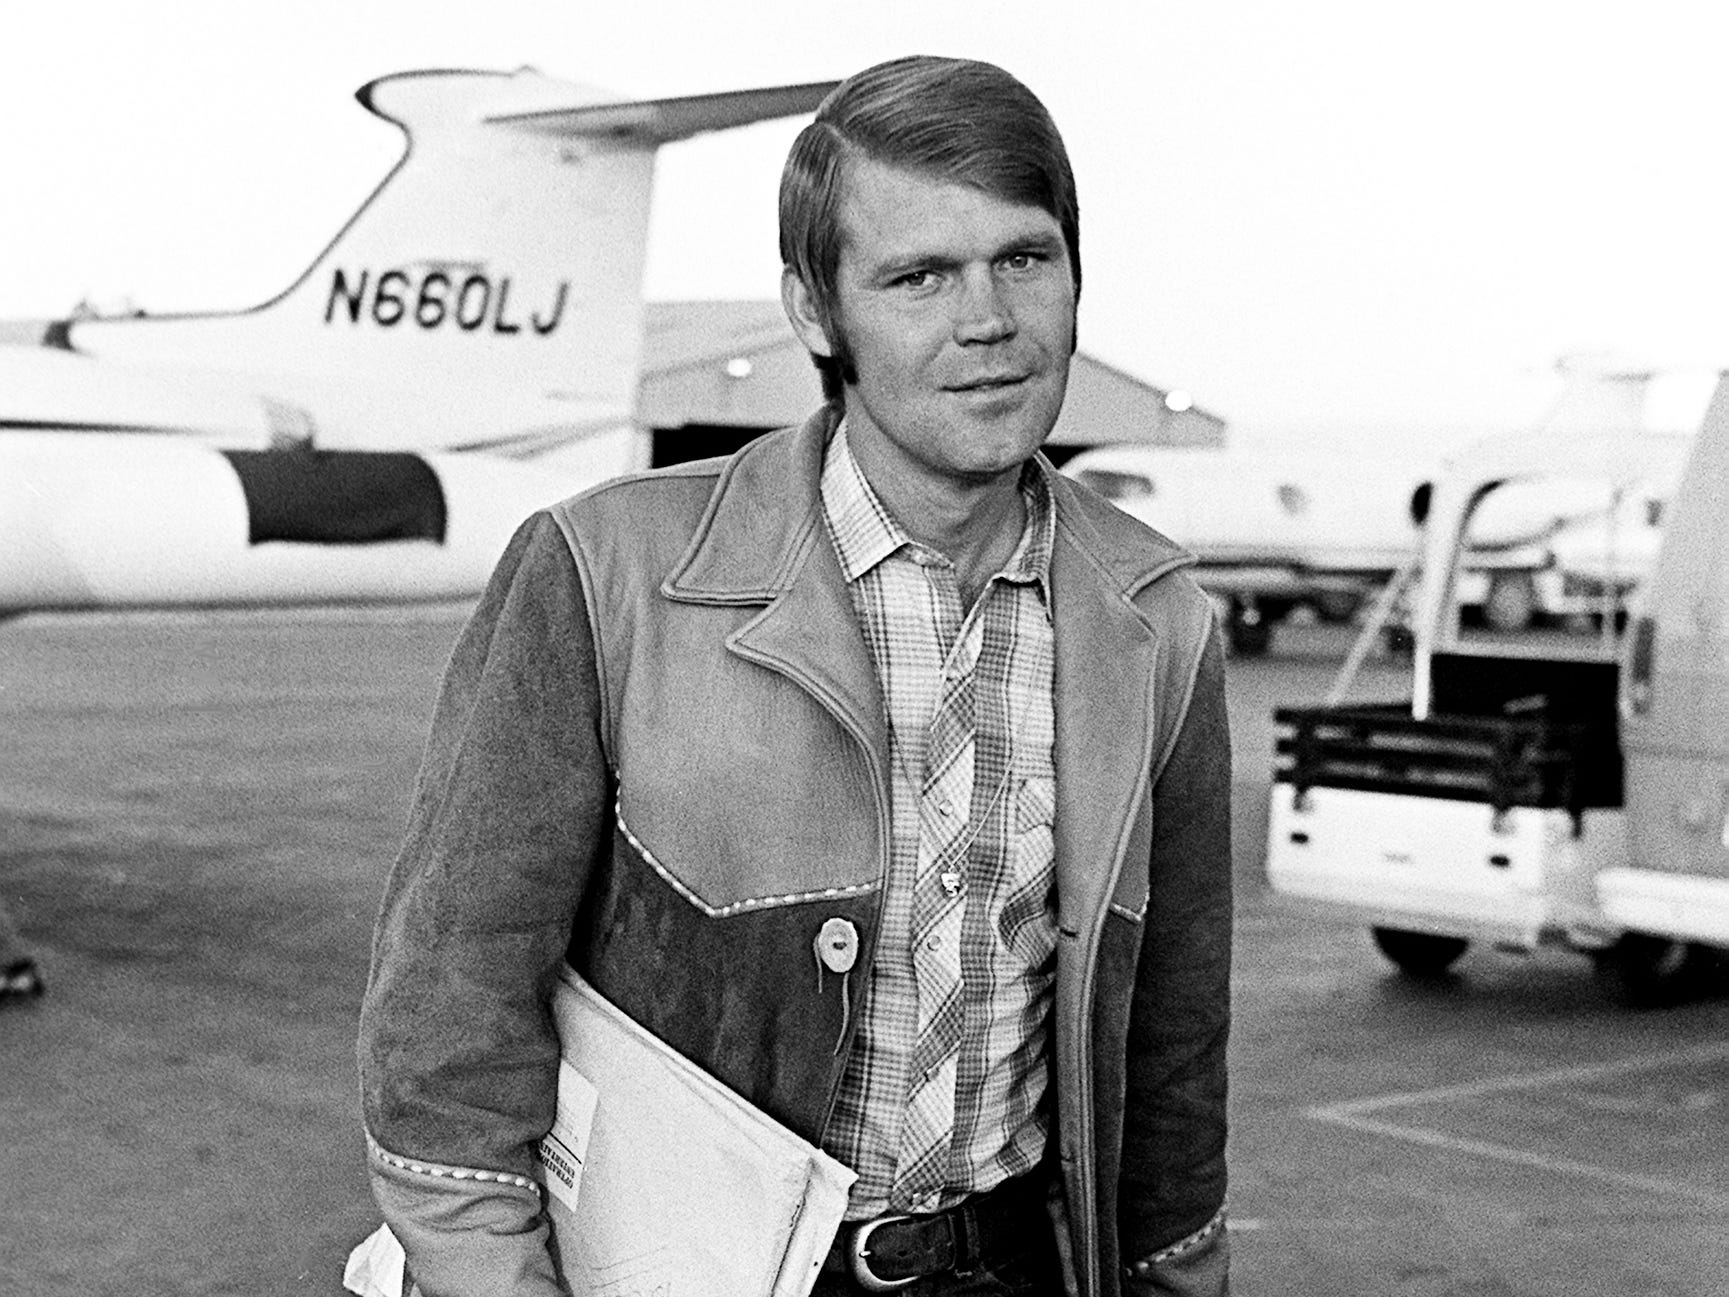 """Glen Campbell arrives in Nashville on a chartered Lear Jet on Oct. 18, 1968, so he was able to just make the second annual CMA Awards show at the Ryman Auditorium. He was on location in Colorado where he is filming """"True Grit"""" with John Wayne."""